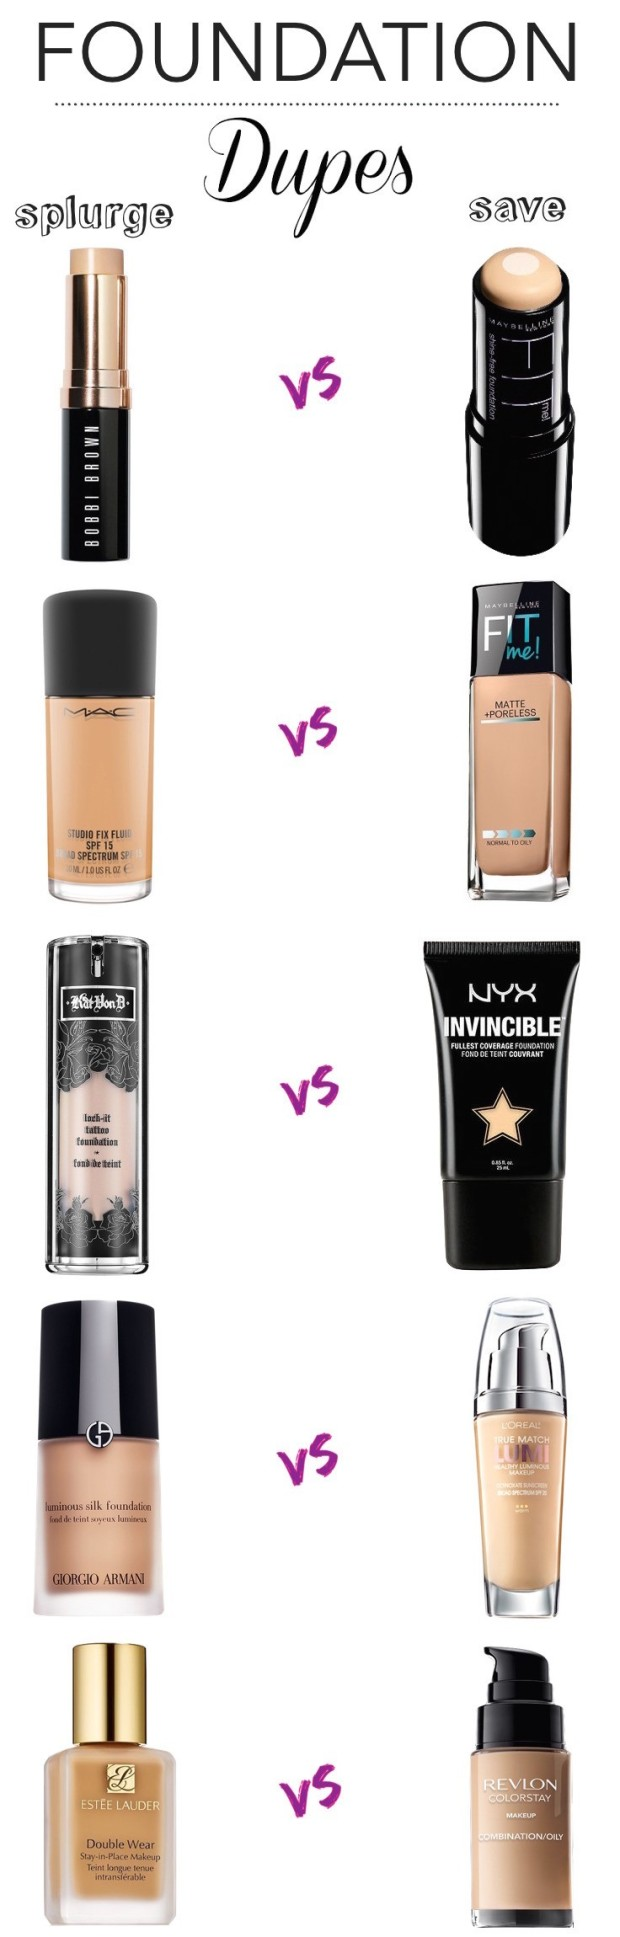 beauty-tidbits-foundation-dupes